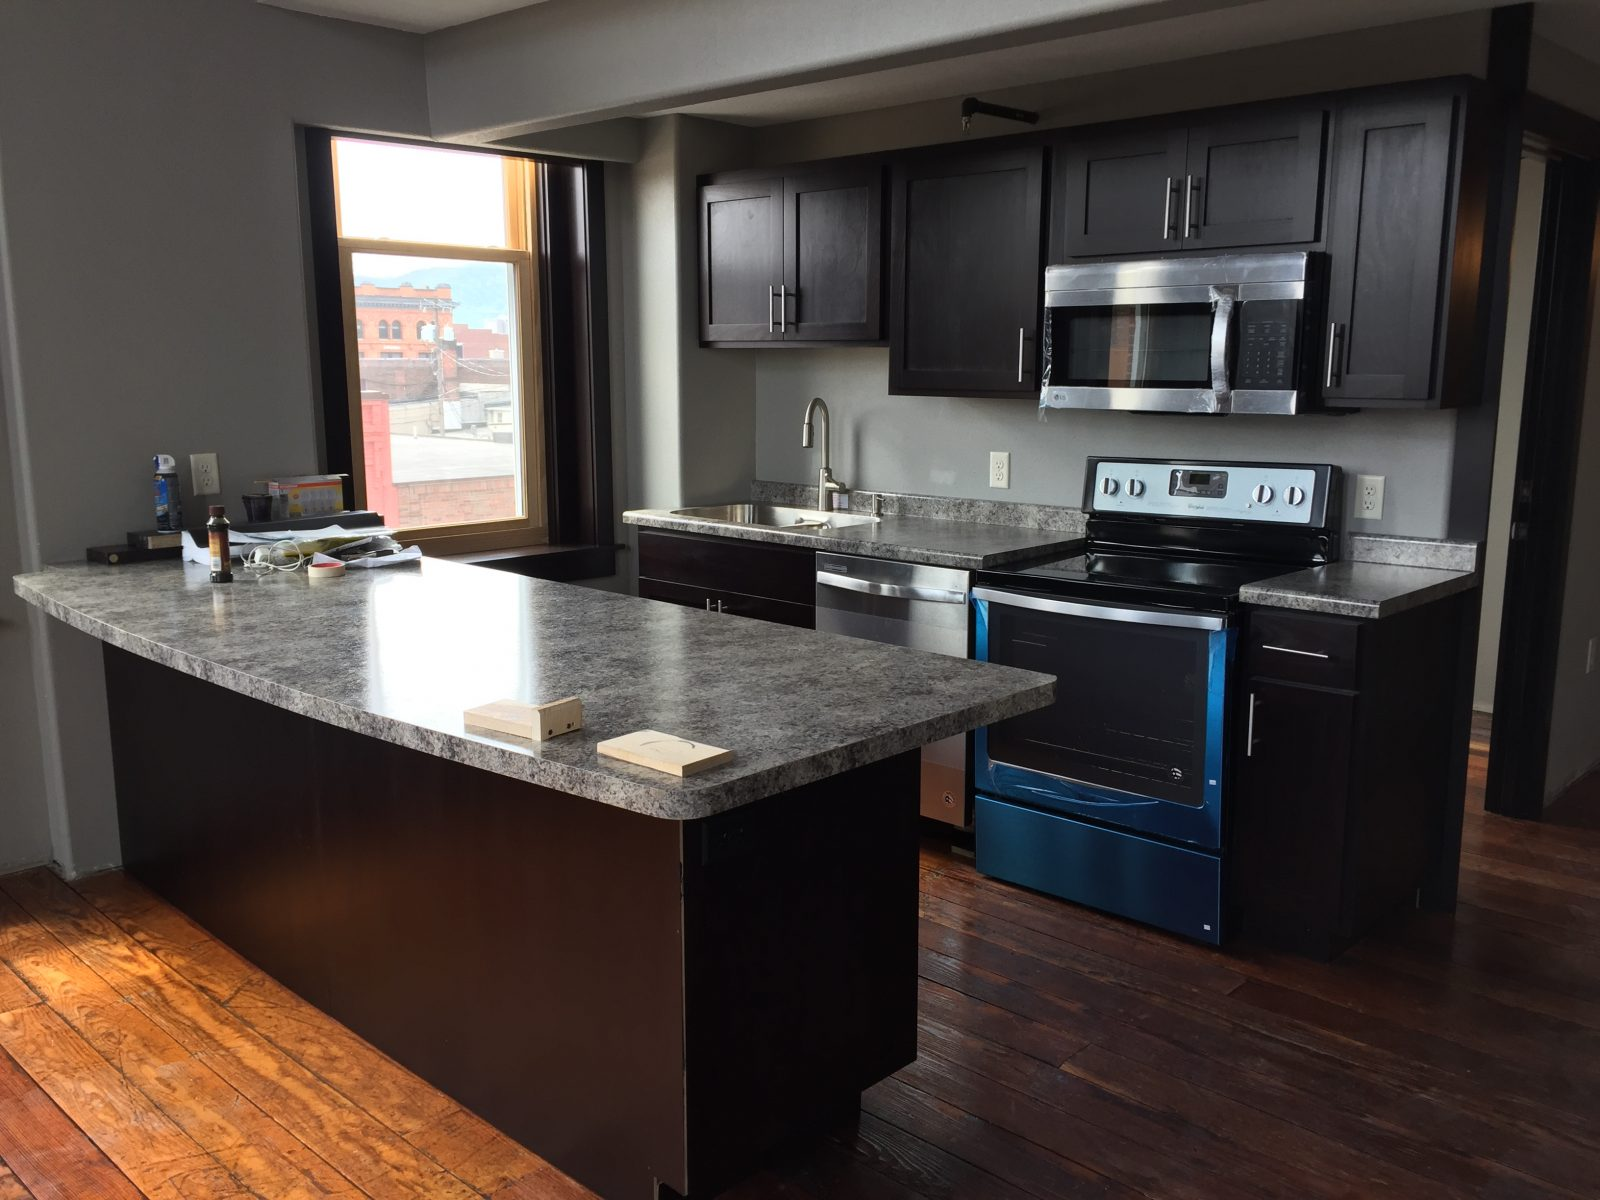 3 Bedroom Apartment In Downtown Winona Off Campus